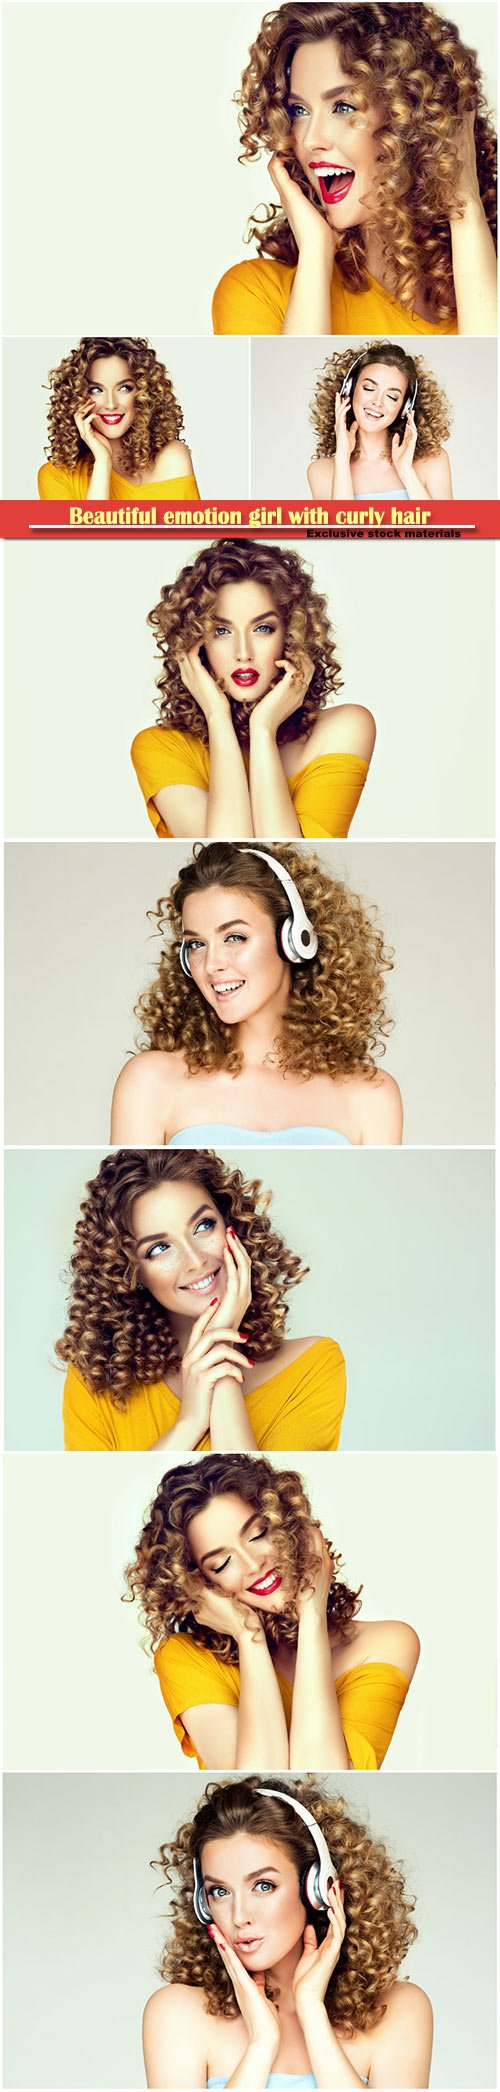 Beautiful emotion girl with curly hair